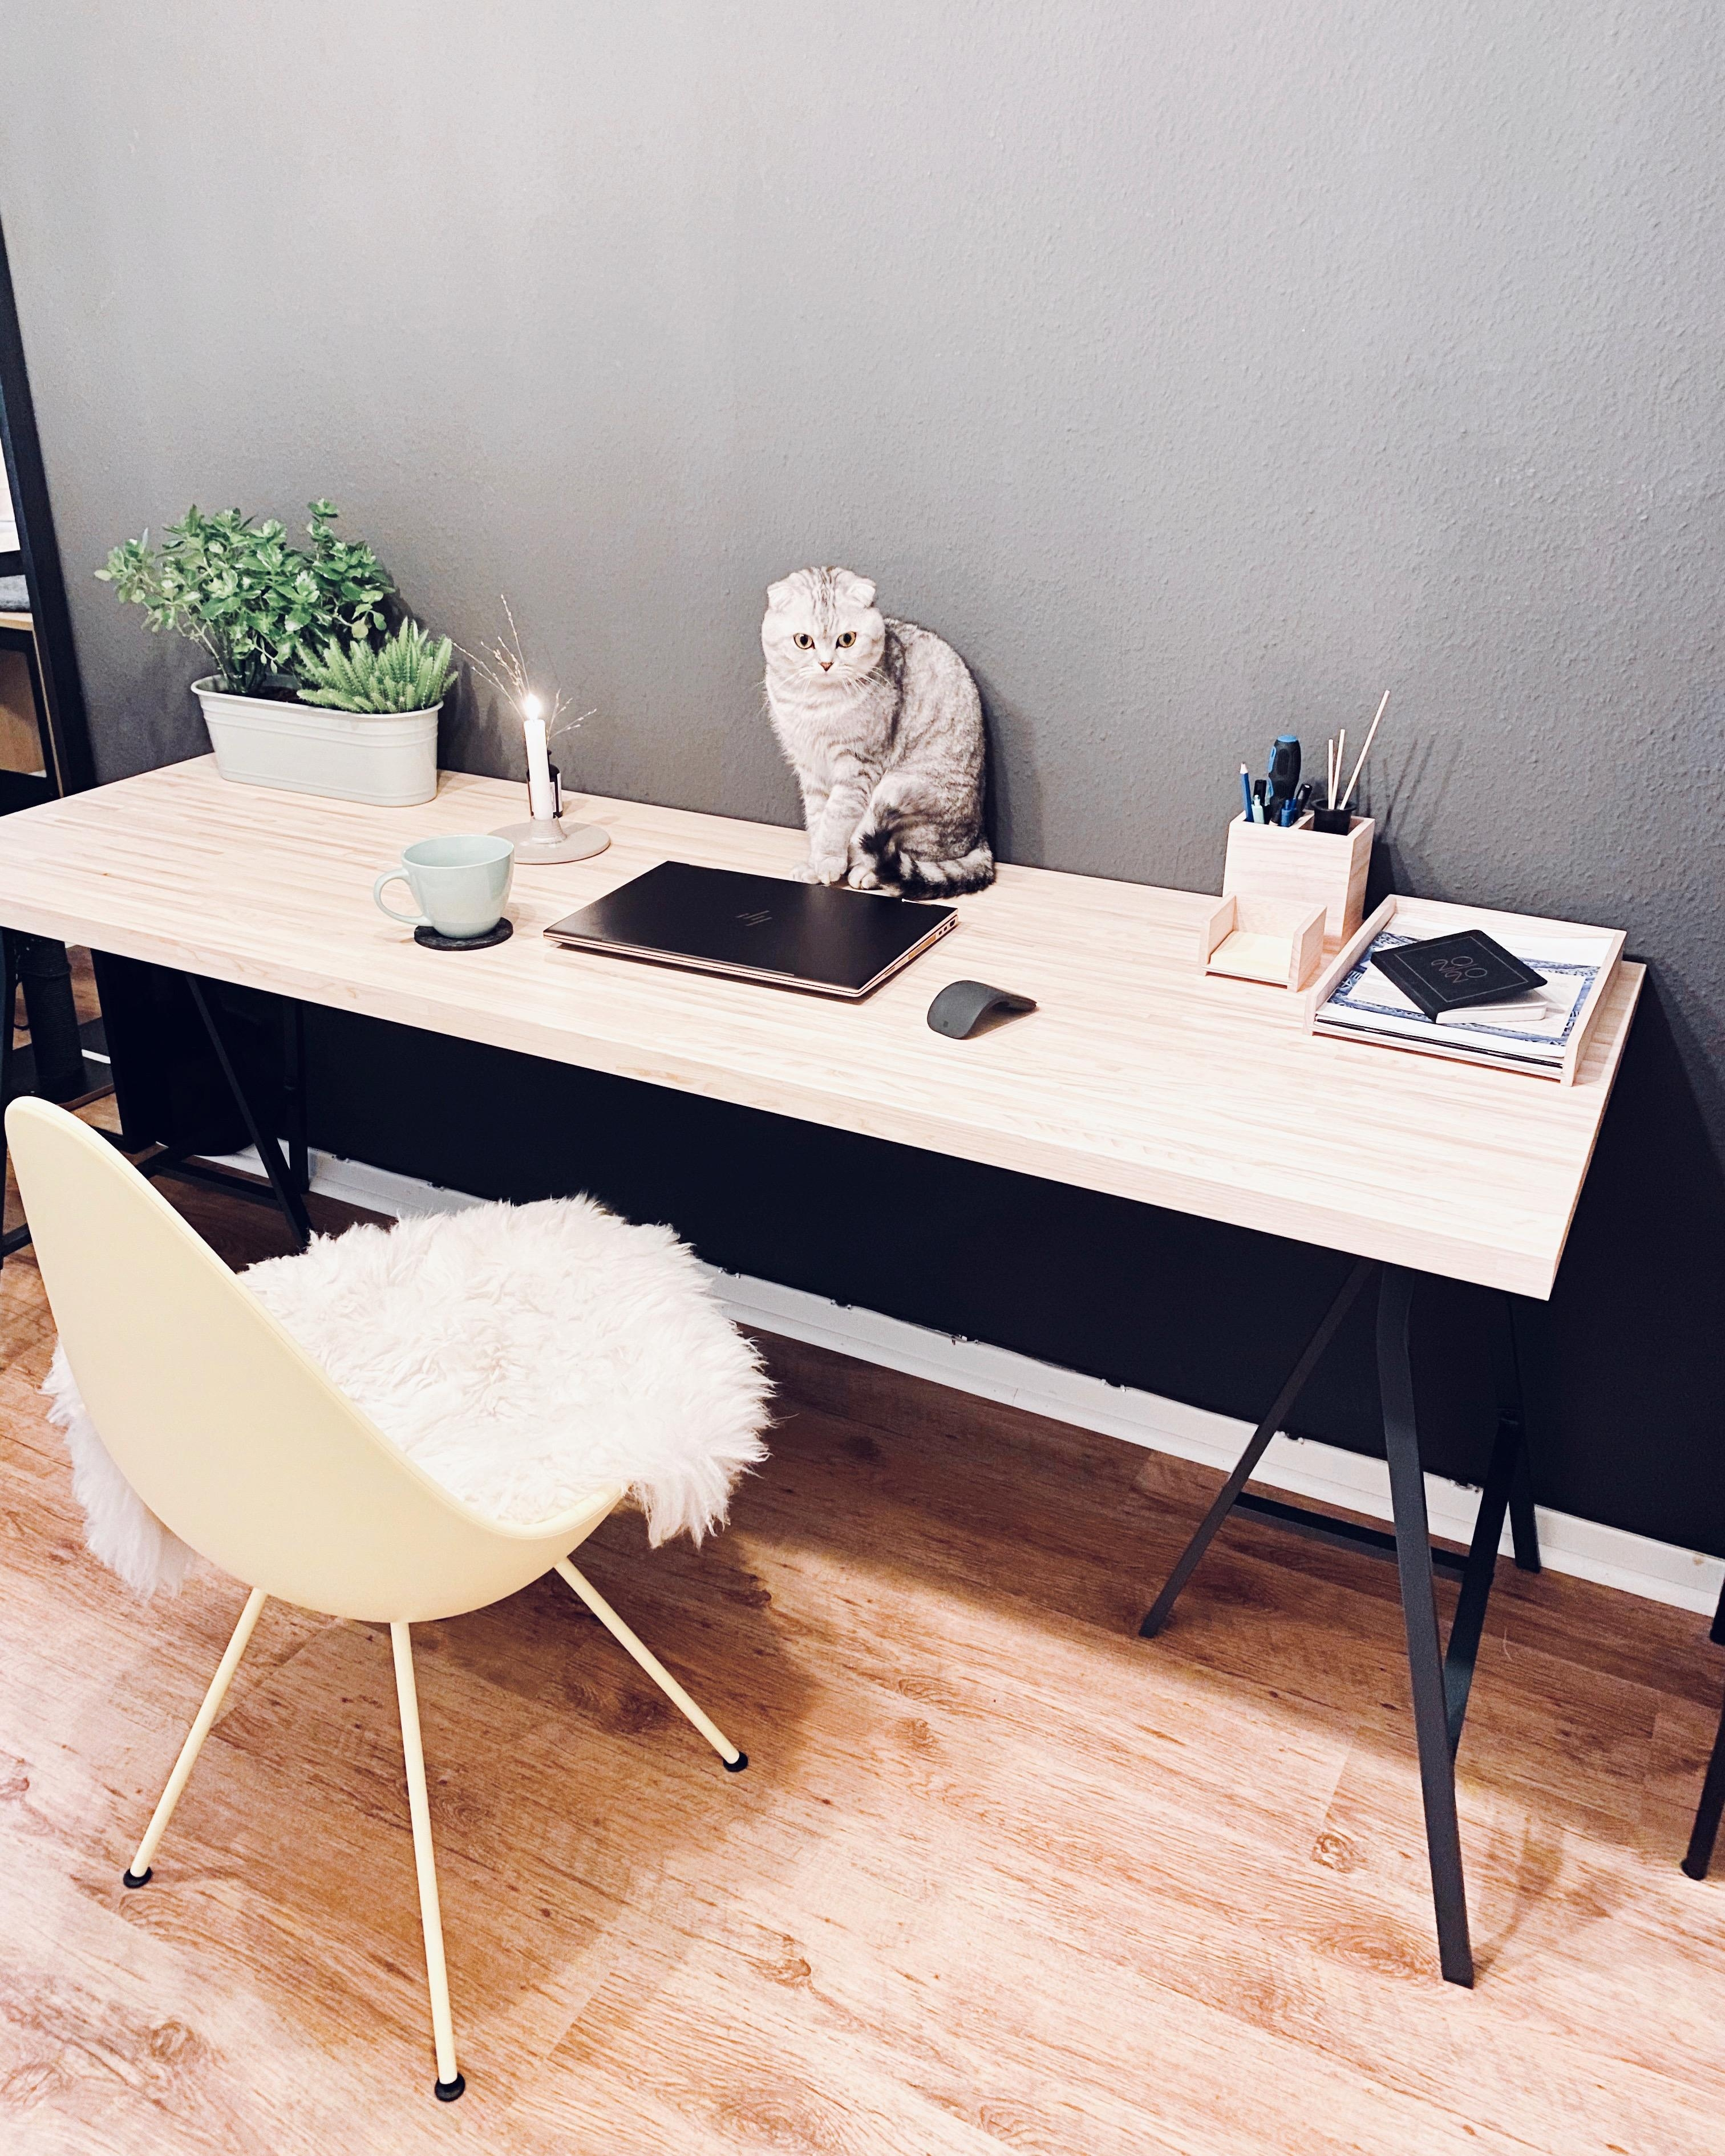 Der alltag hat uns wieder  workingspace interior nordicroom scandinavianliving hygge catlover plantlover  7498f83b b7fb 4354 853a 1f5f1ee56232